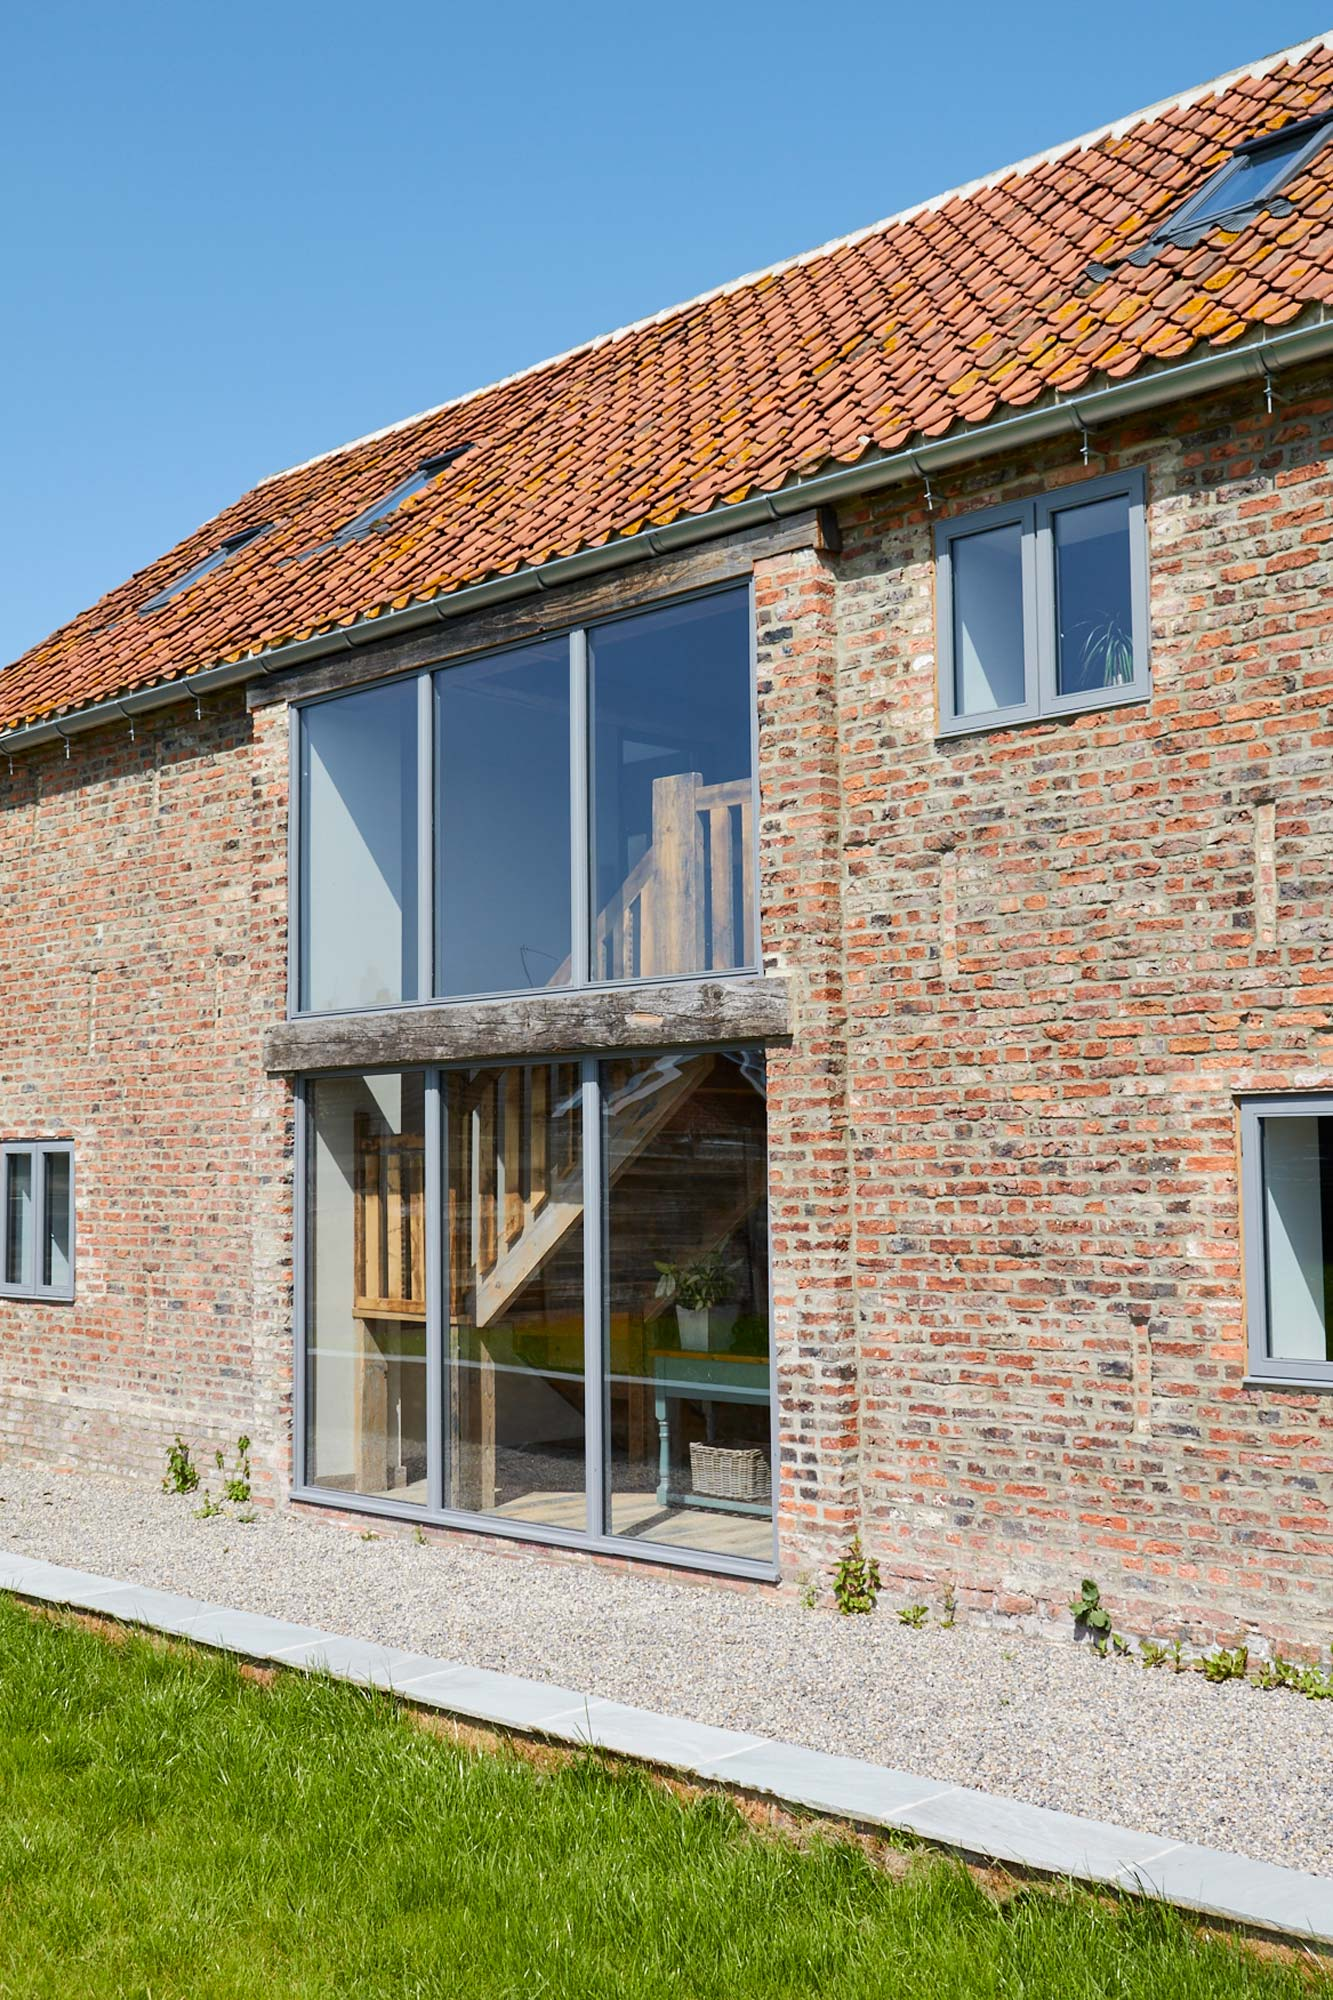 Large glass windows on red brick barn building